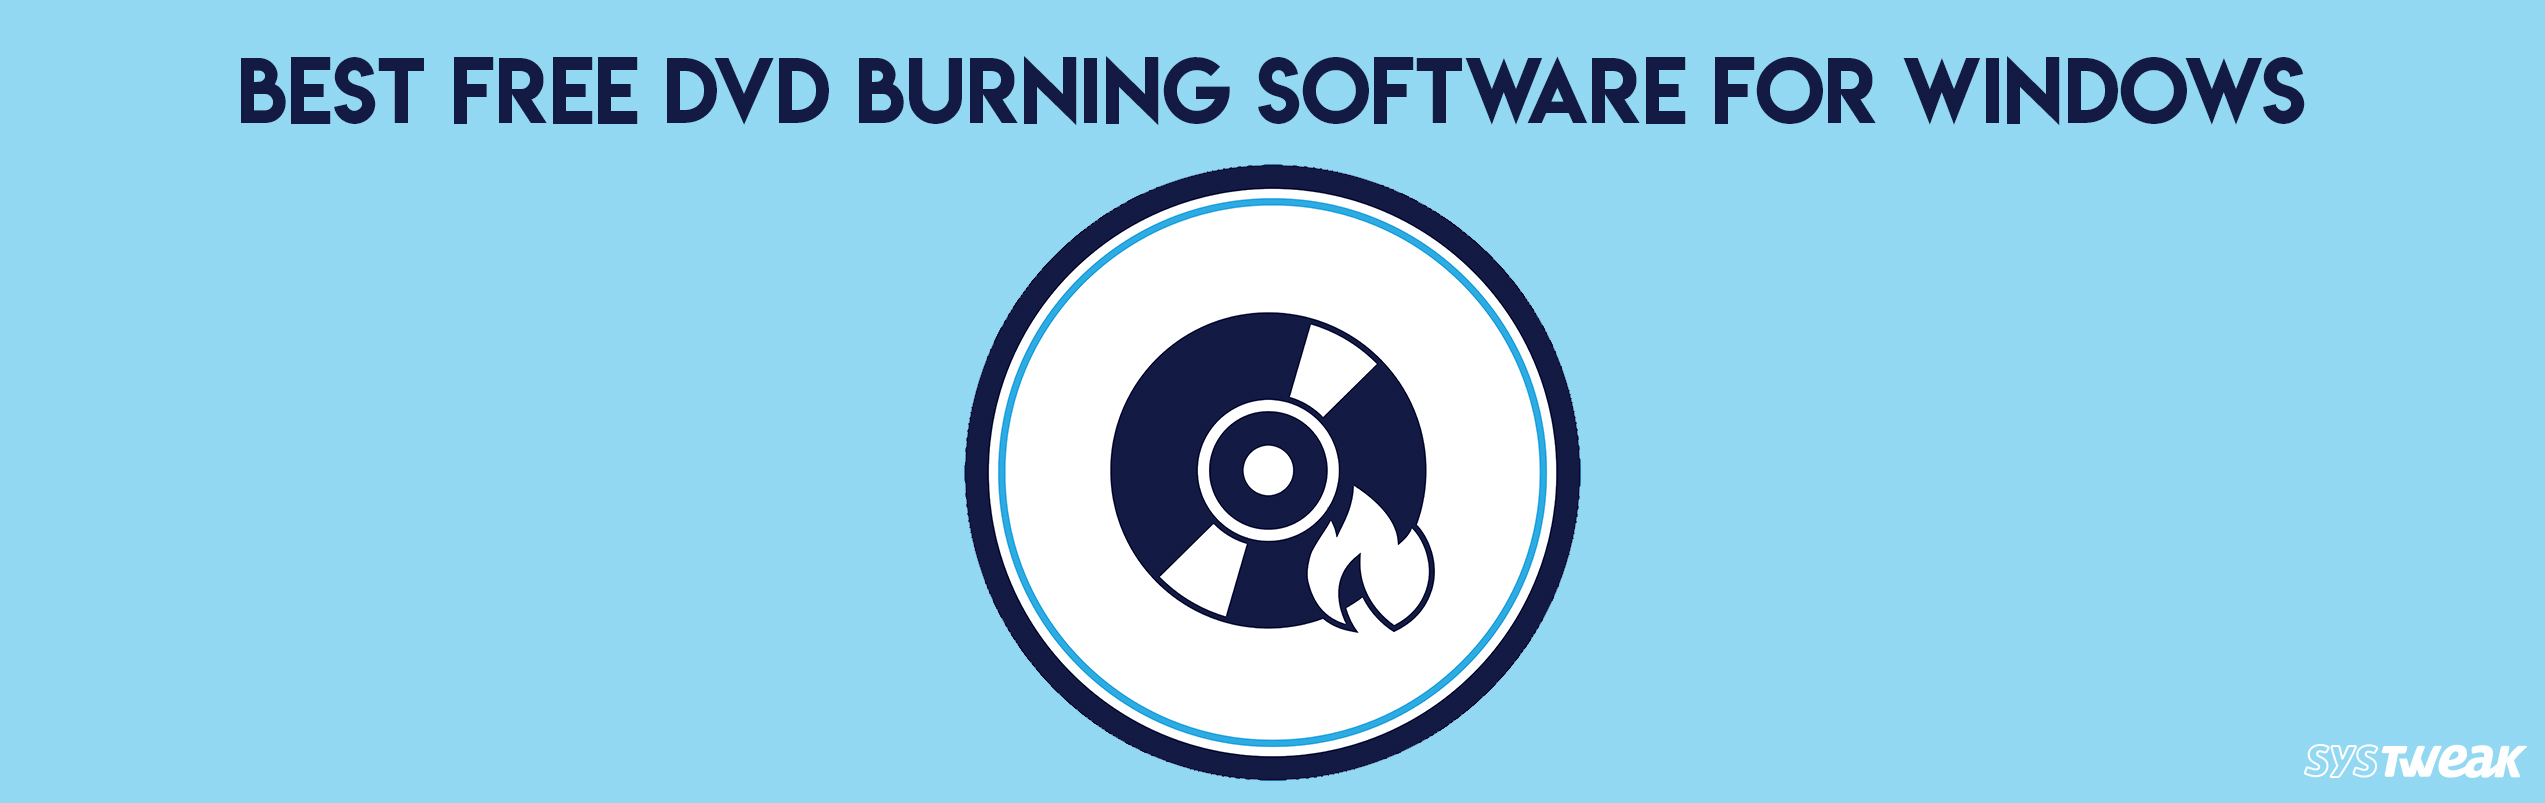 11 Best DVD Burning Software For Windows 2018